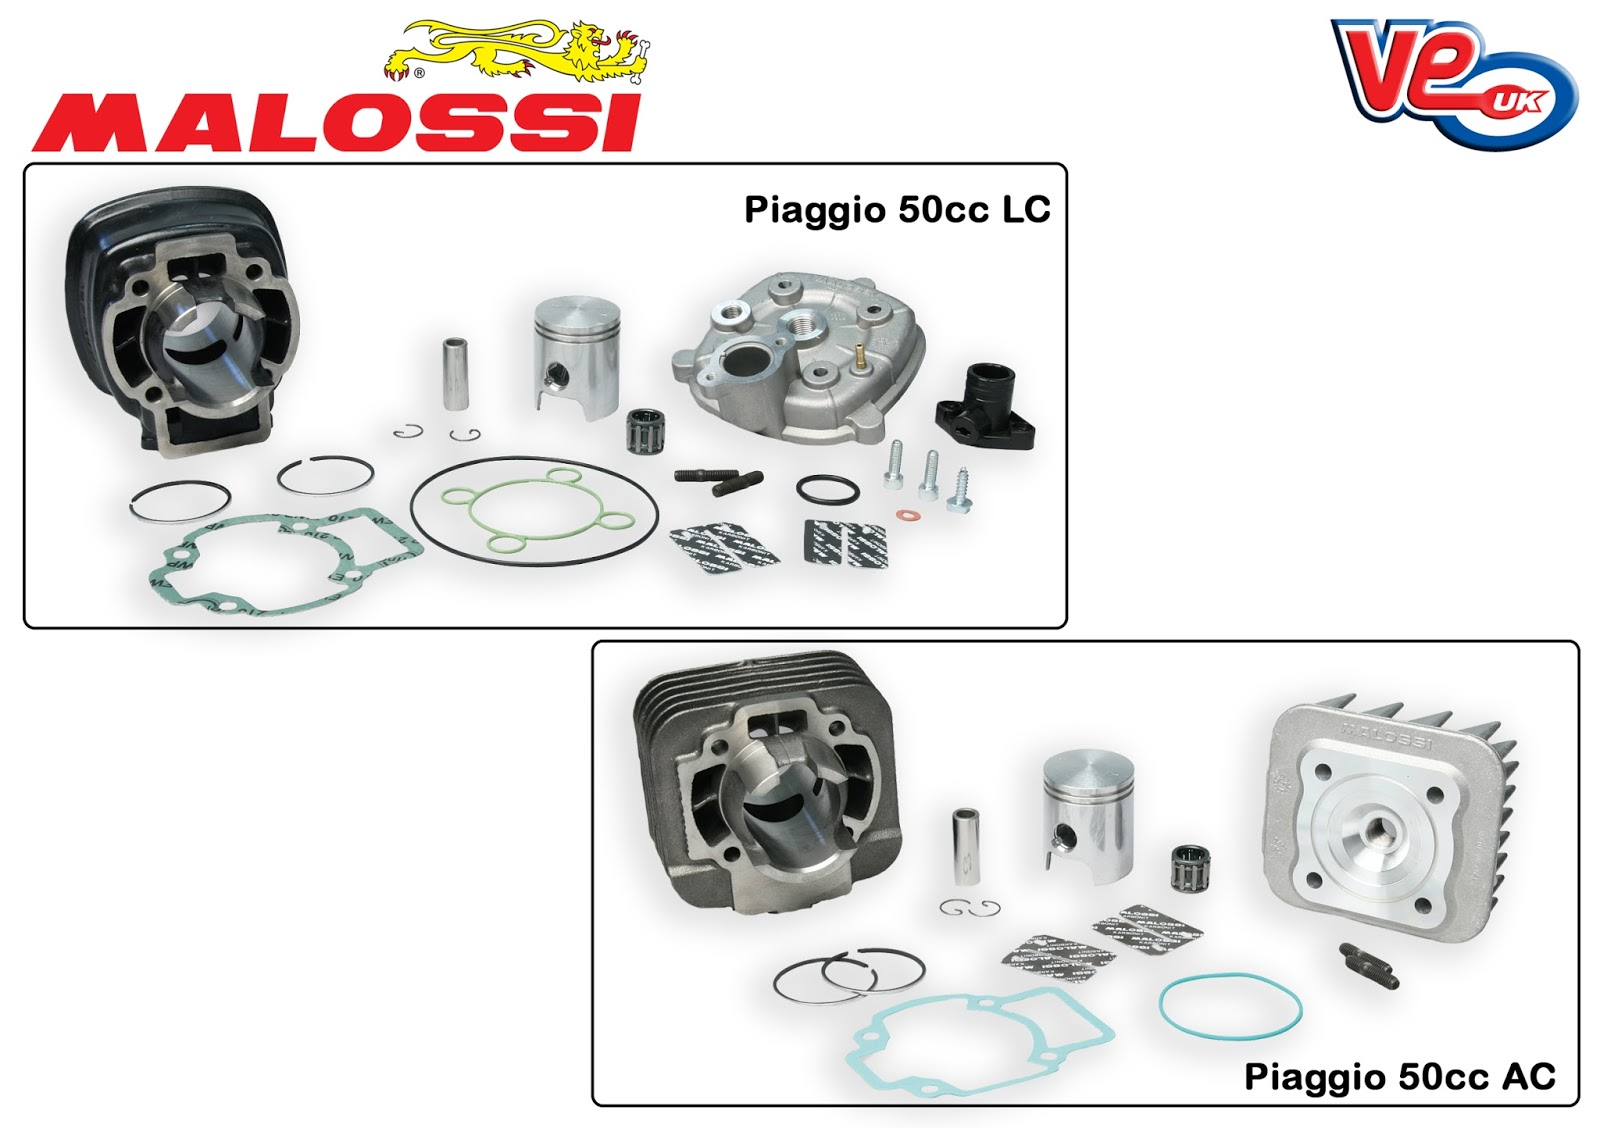 Malossi 50cc Cylinder Kits for Piaggio 2T Scooters